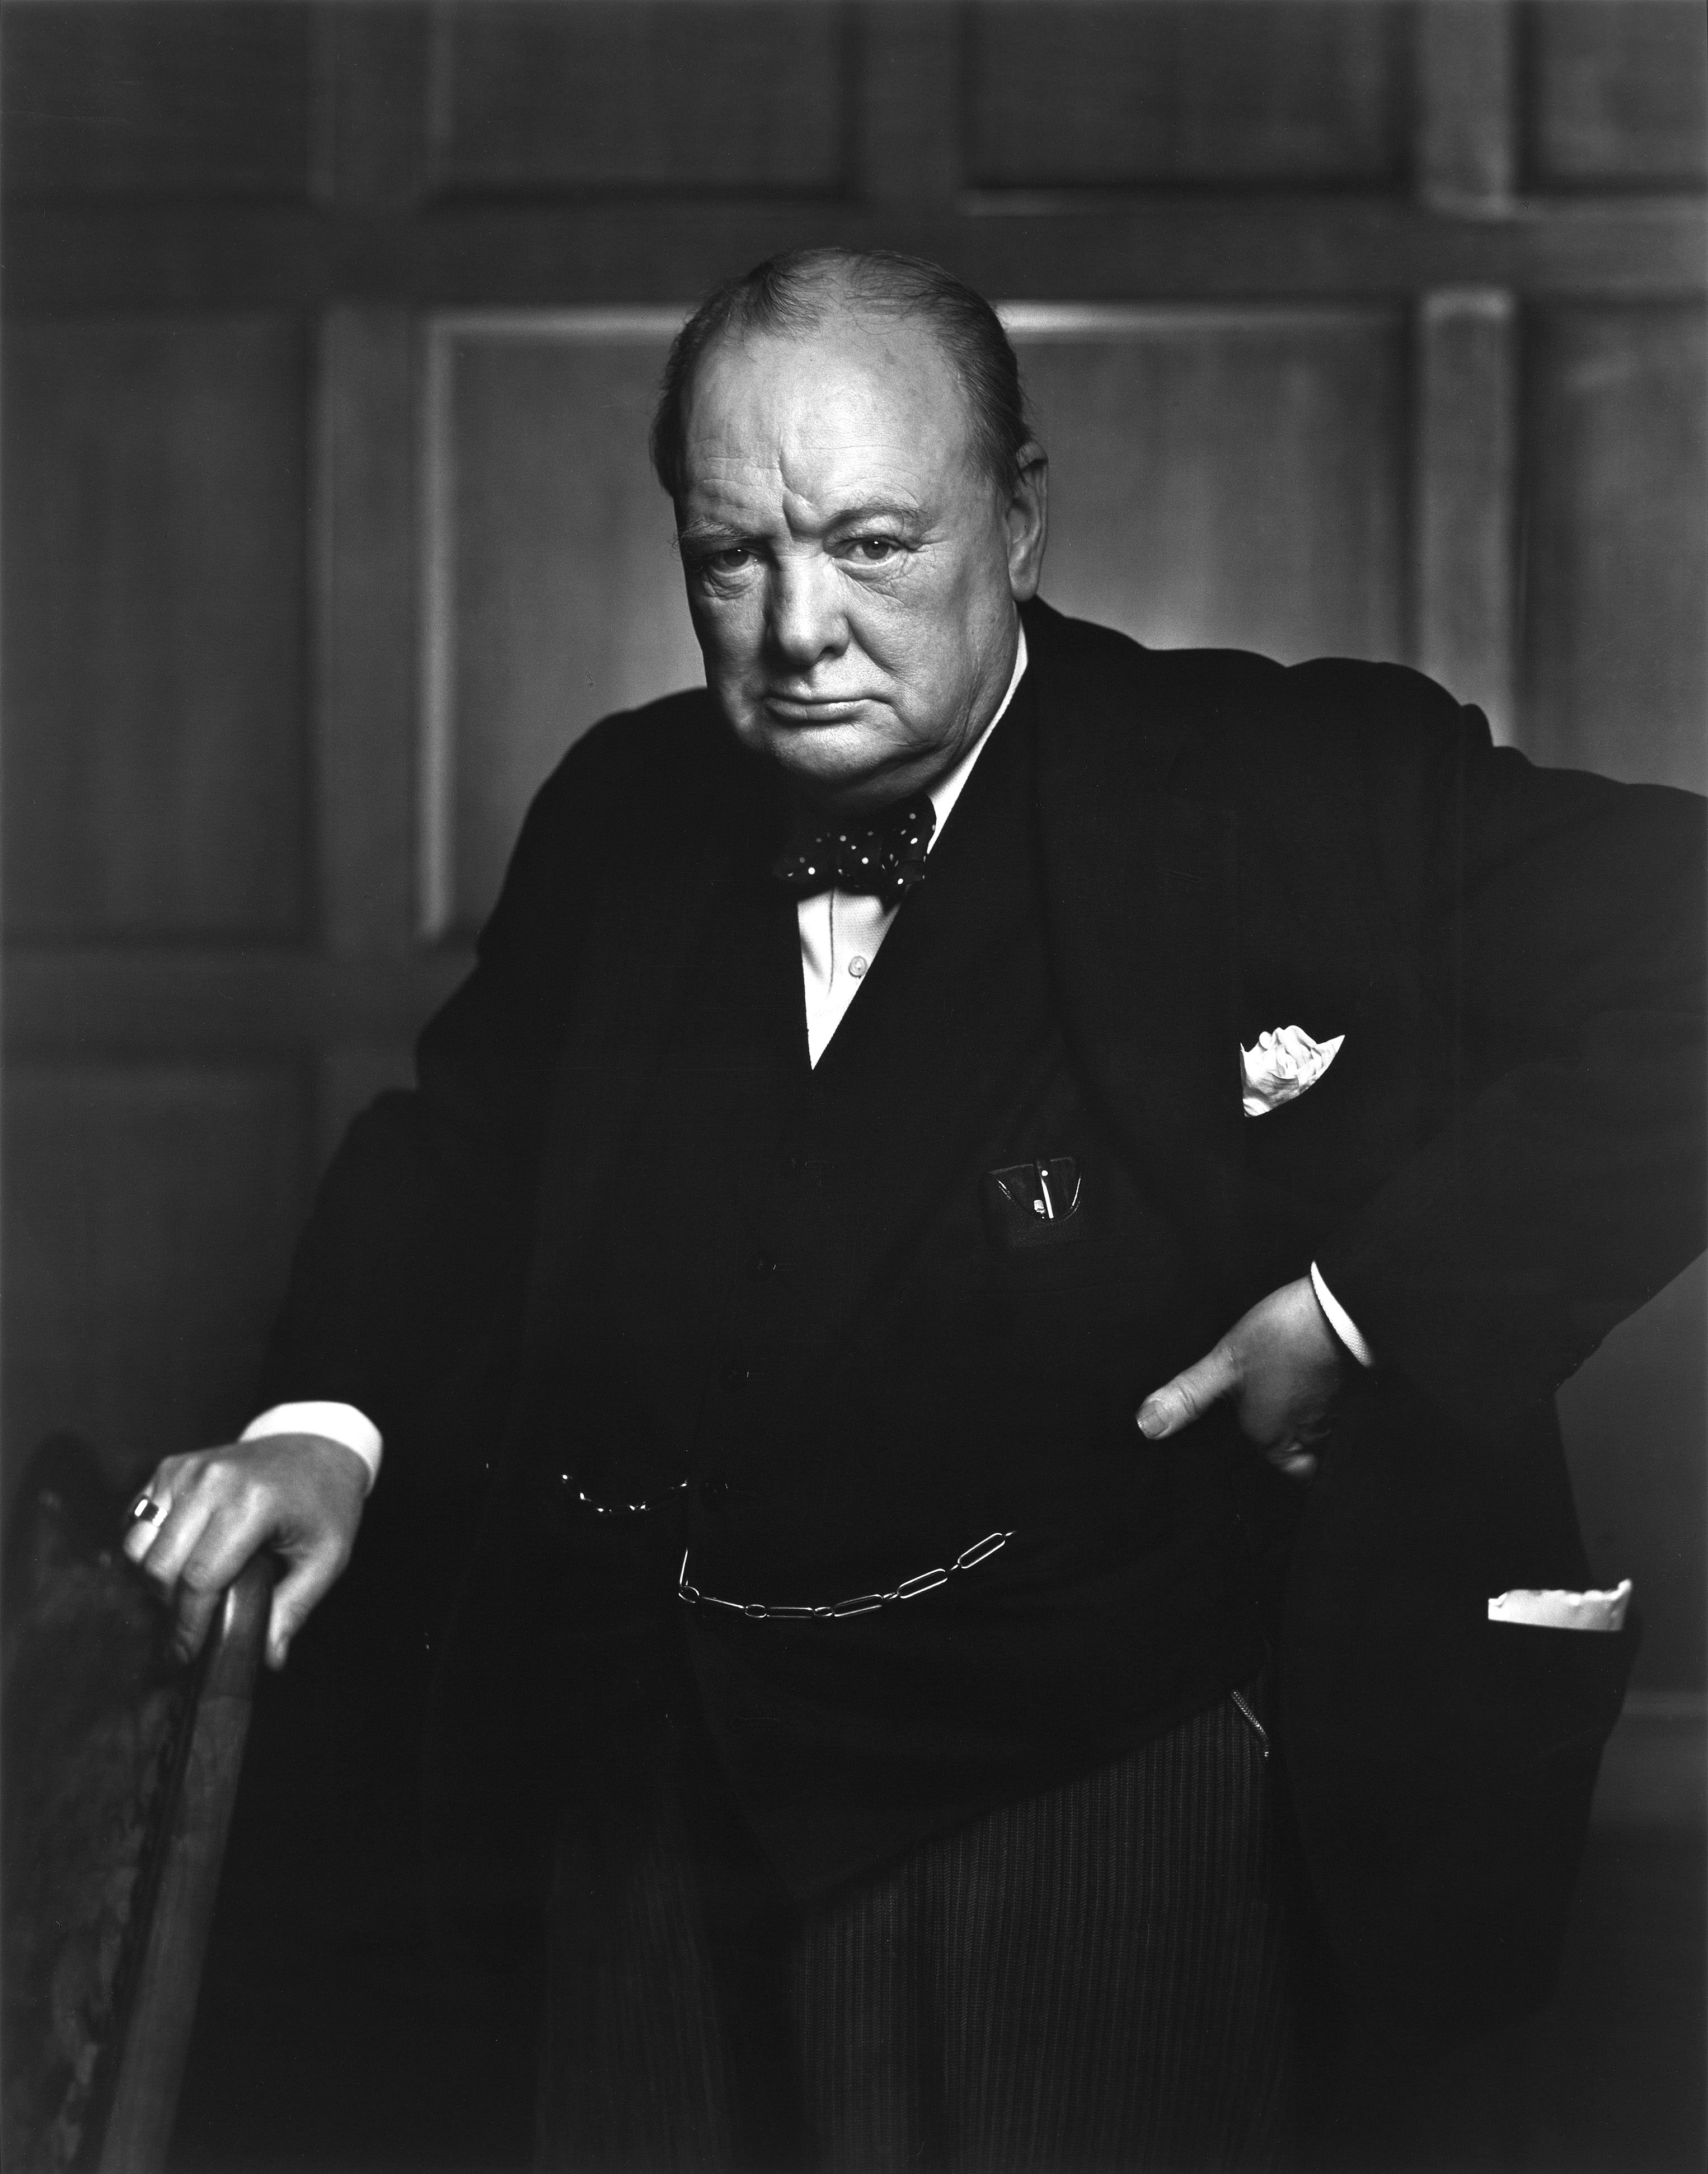 Winston Churchill in the Canadian Parliament, December 1941 by Yousuf Karsh